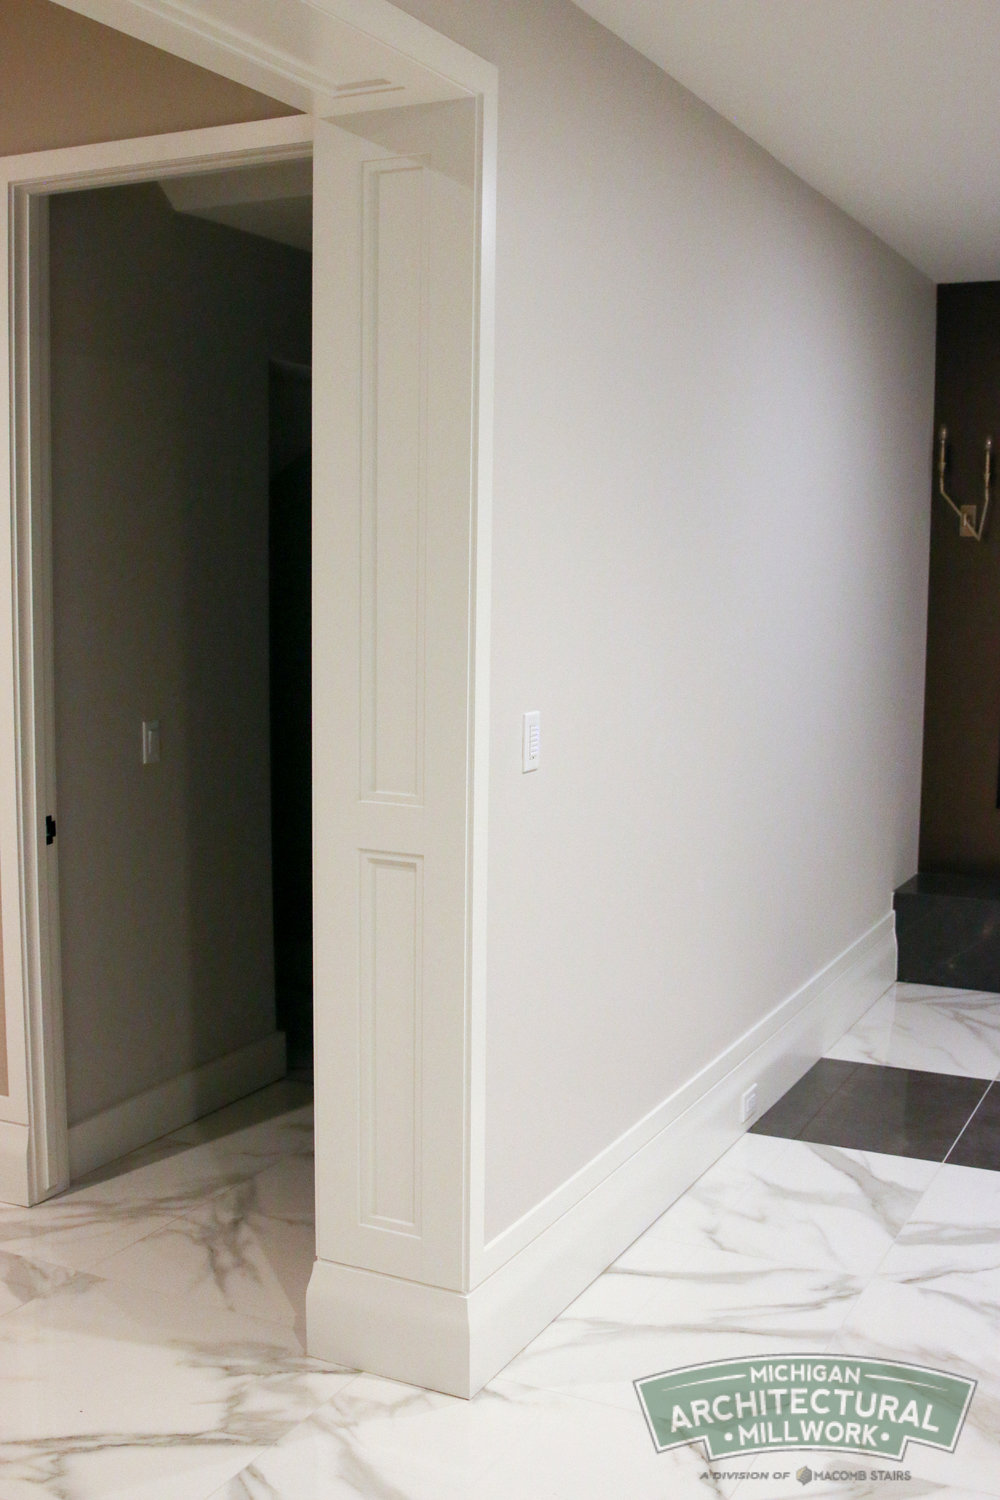 Michigan Architectural Millwork- Moulding and Millwork Photo-2.jpg